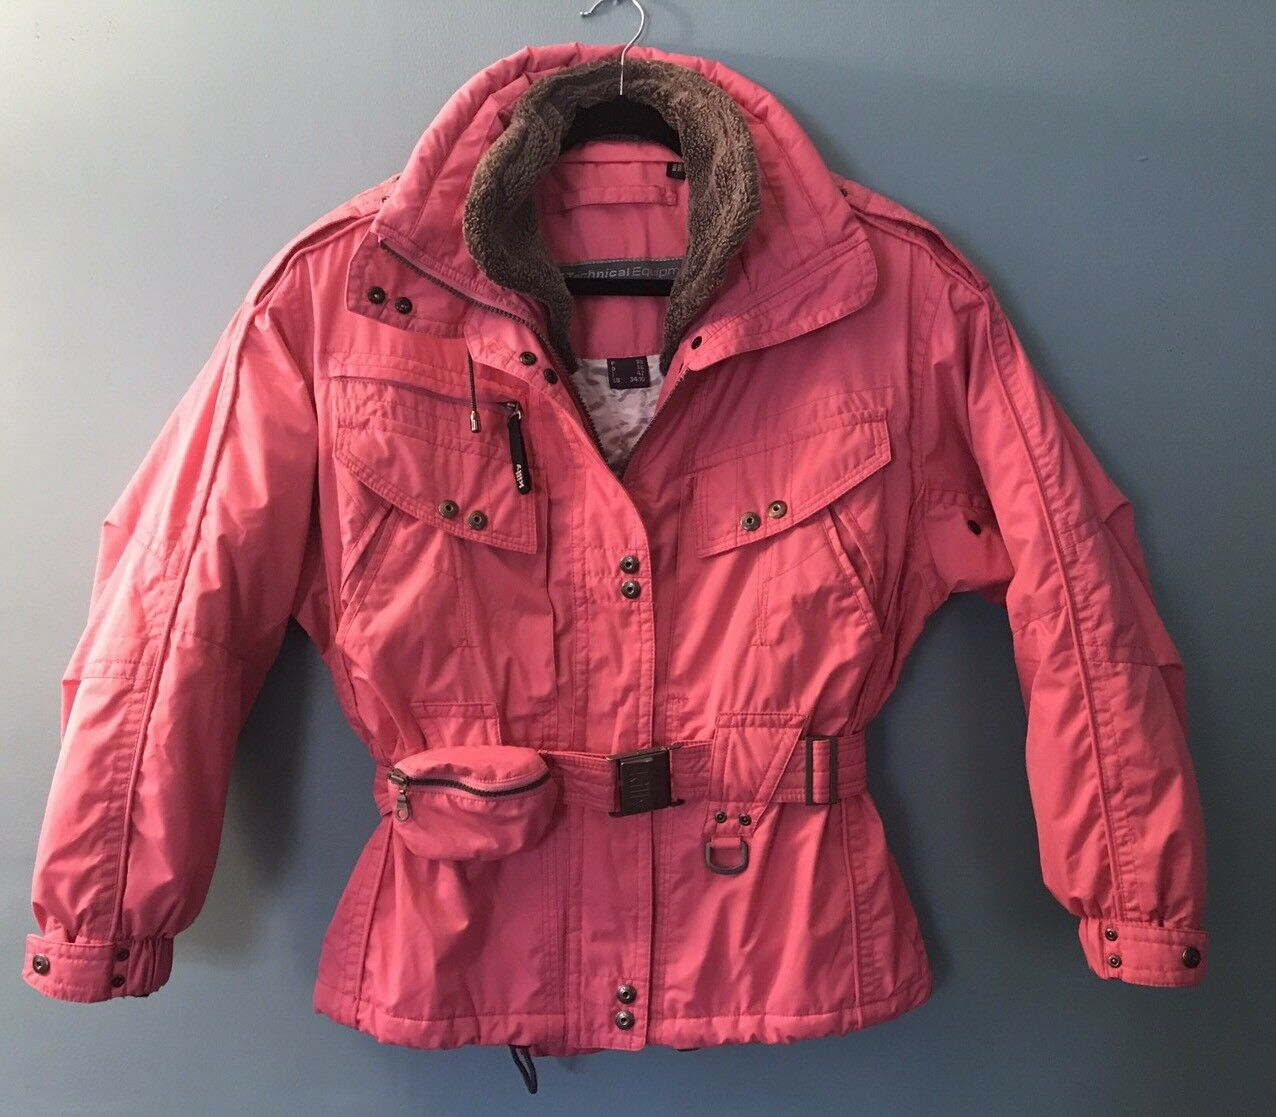 Killy Parka Coat Technical Equipment Recco Rescue System Ski Größe 6 US Rosa